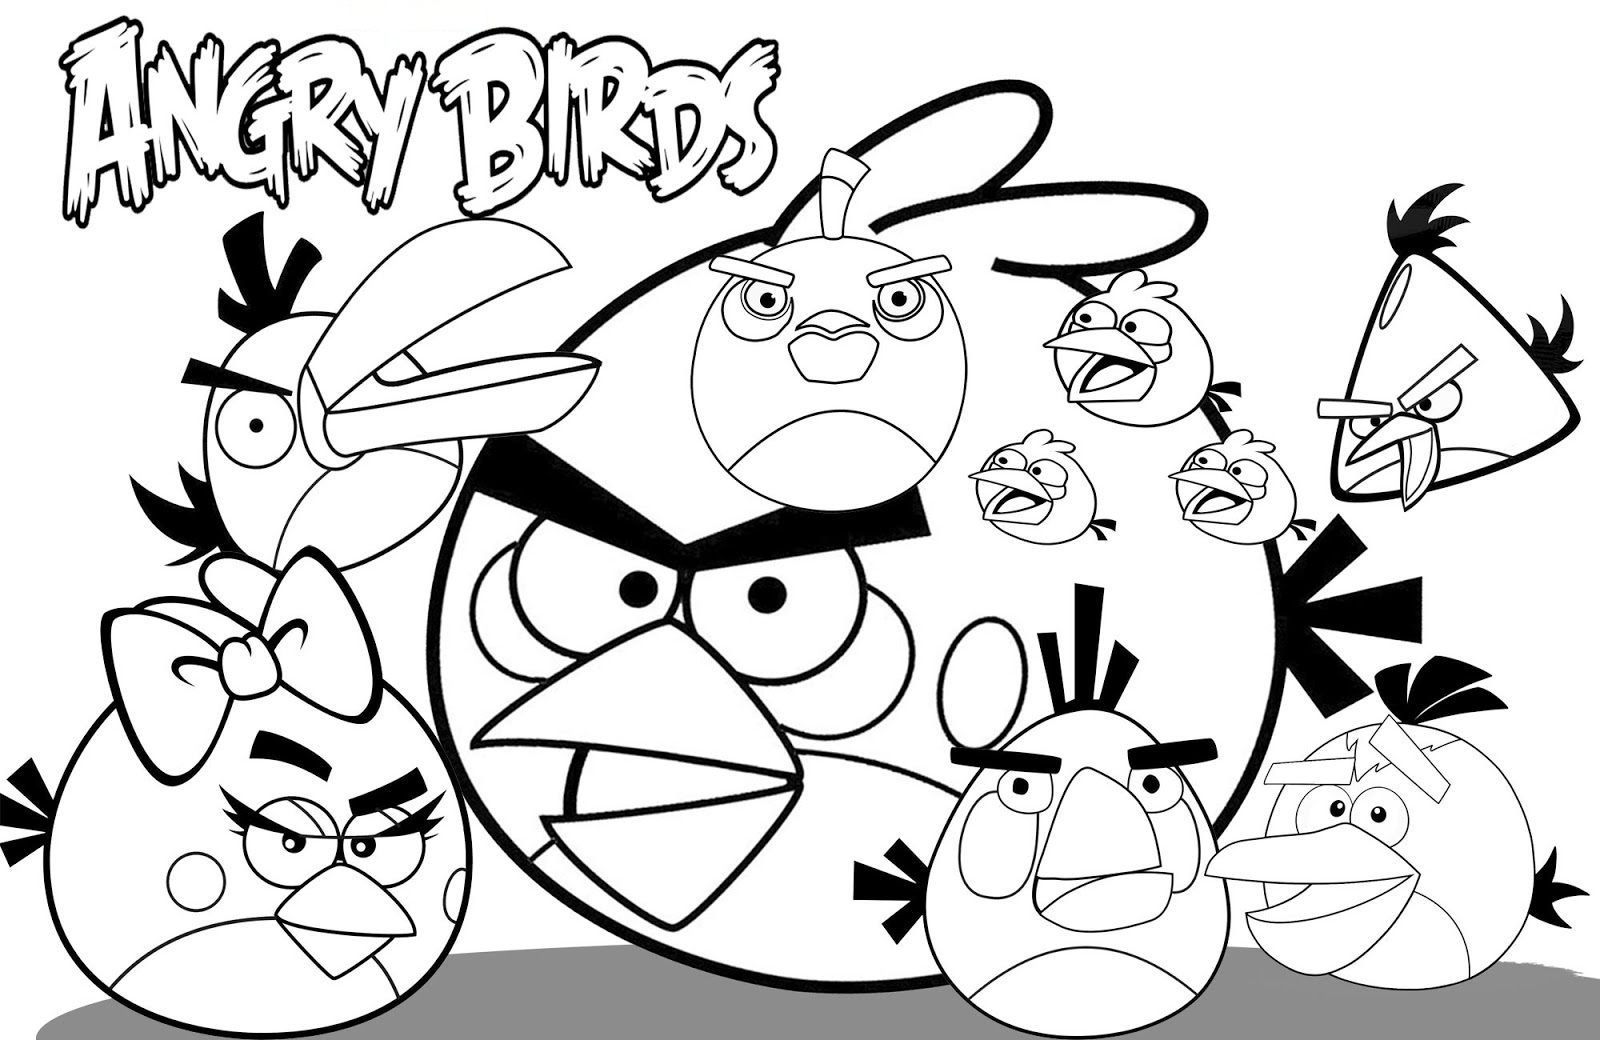 angry birds pictures to color and print angry birds kids coloring pages free printable kids print to birds and pictures color angry